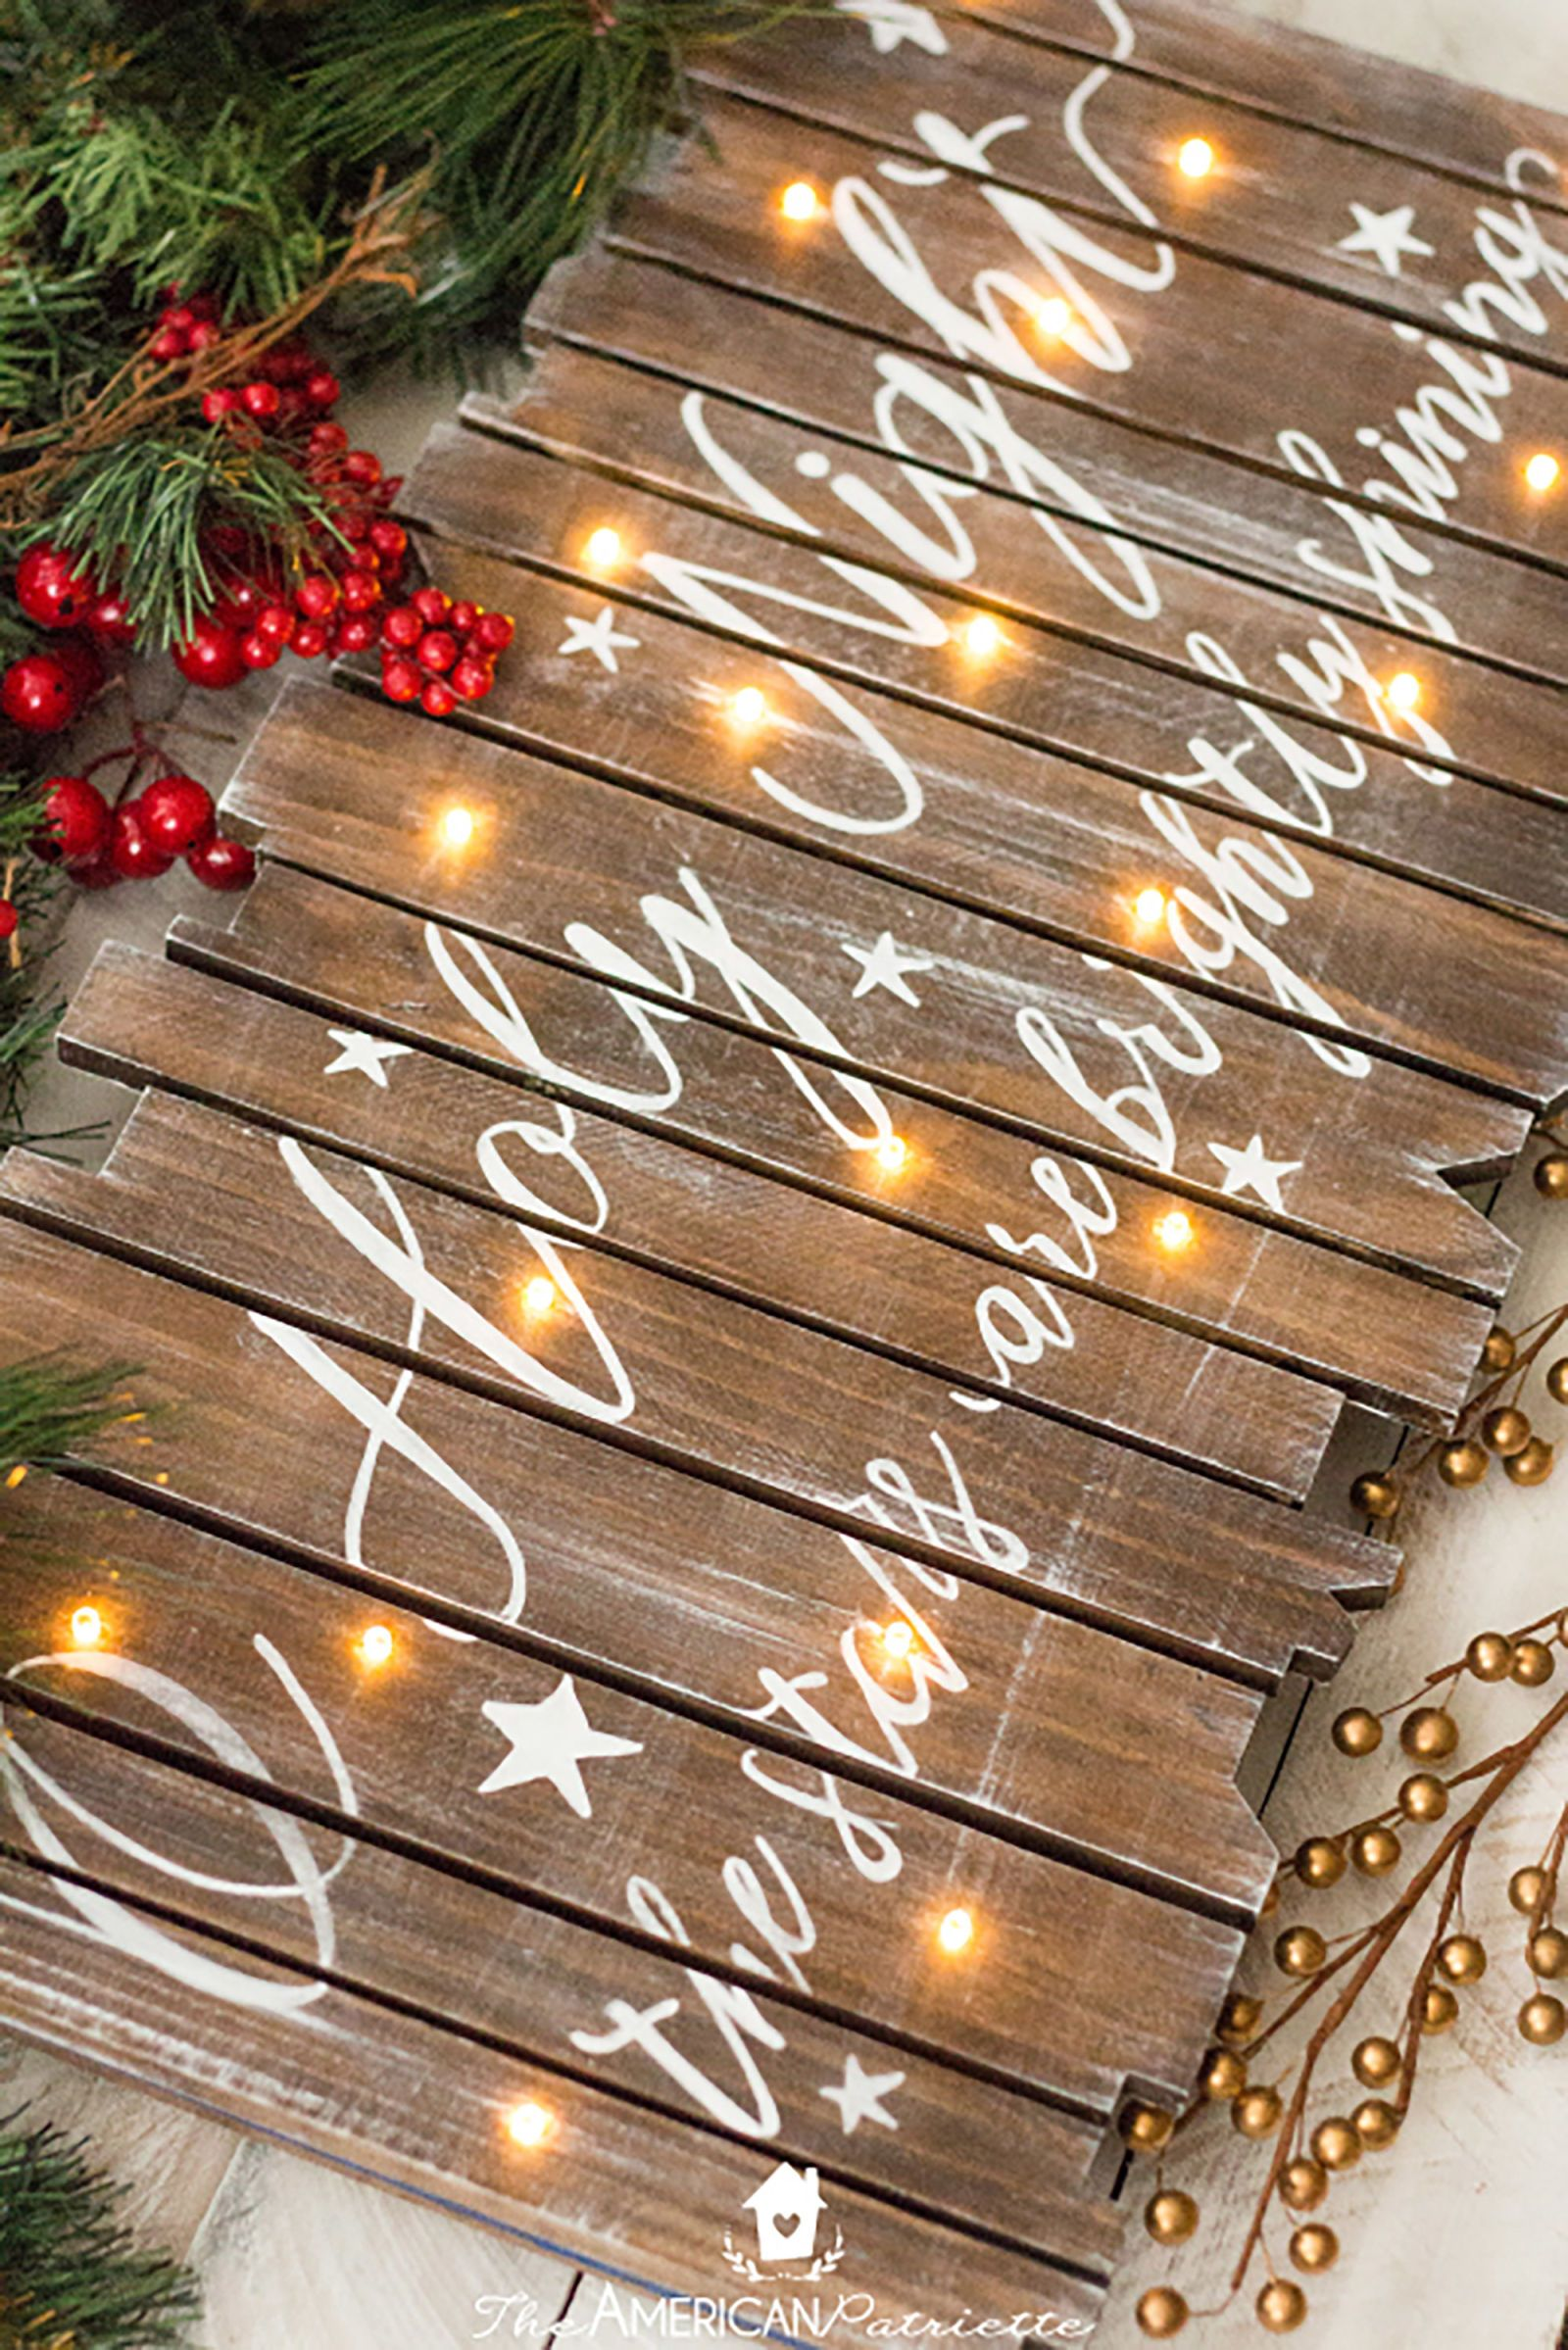 Easy Holiday Crafts to Deck the Halls This Christmas